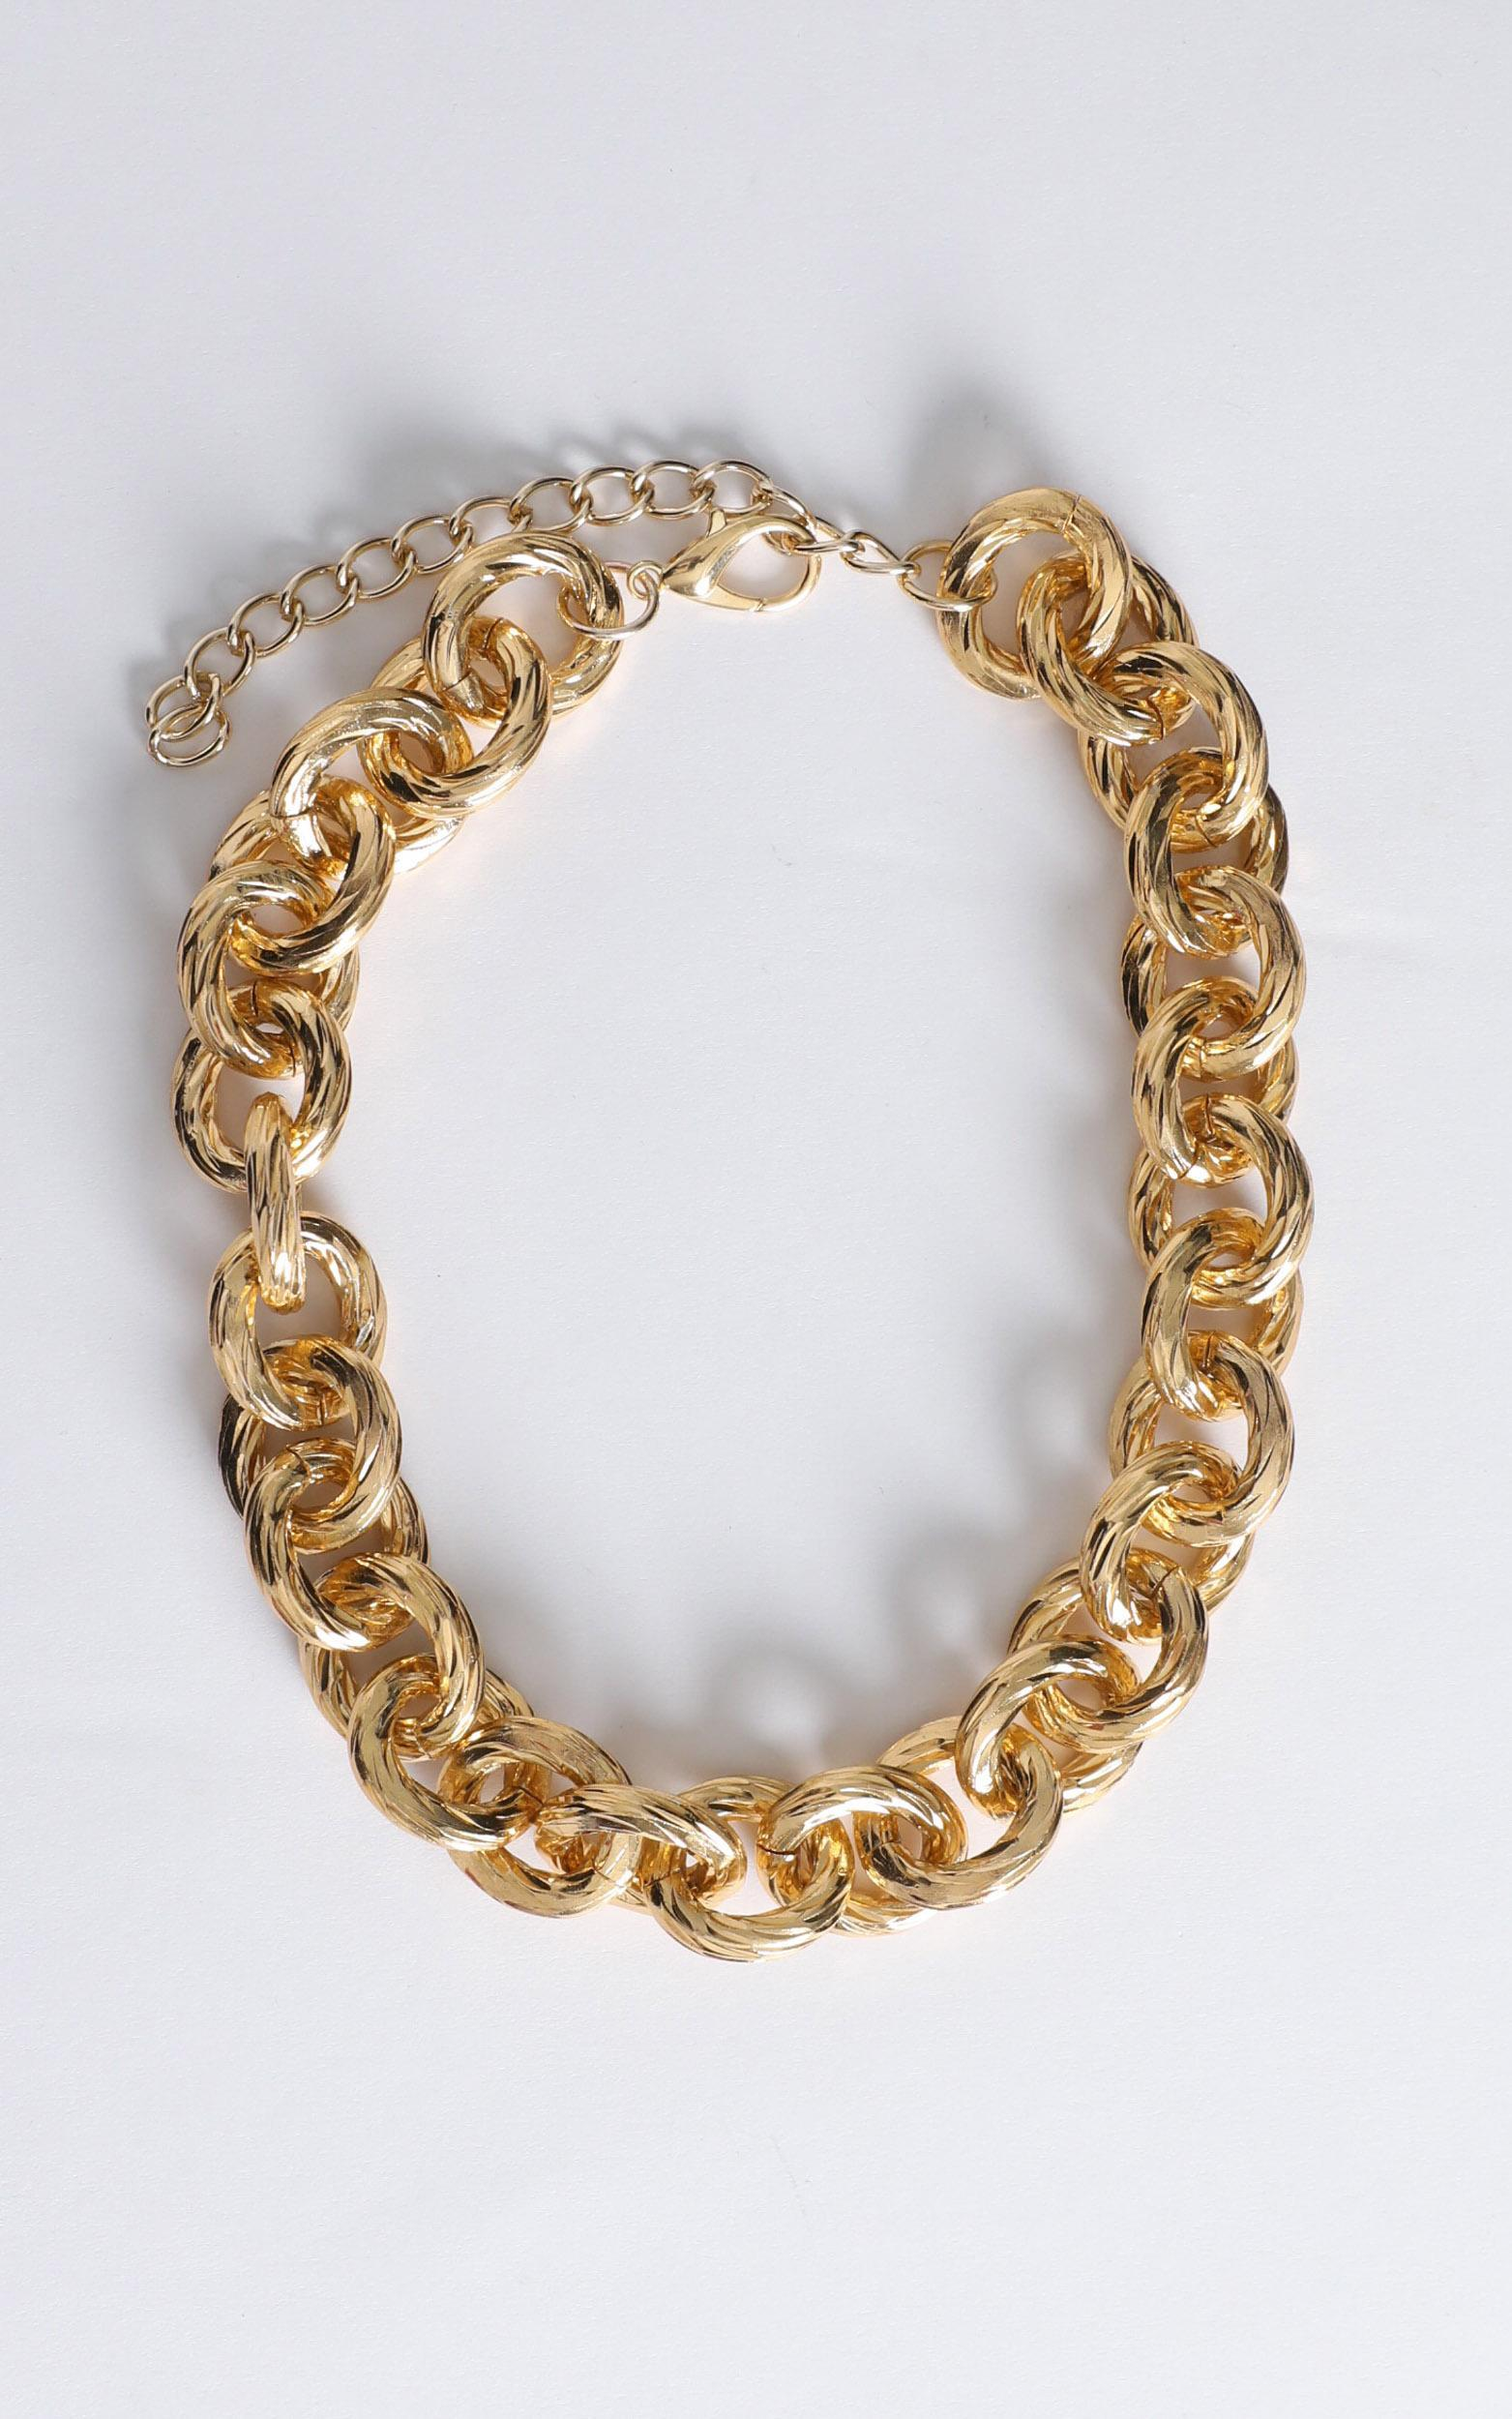 Anaise Chain Necklace in Gold, , hi-res image number null